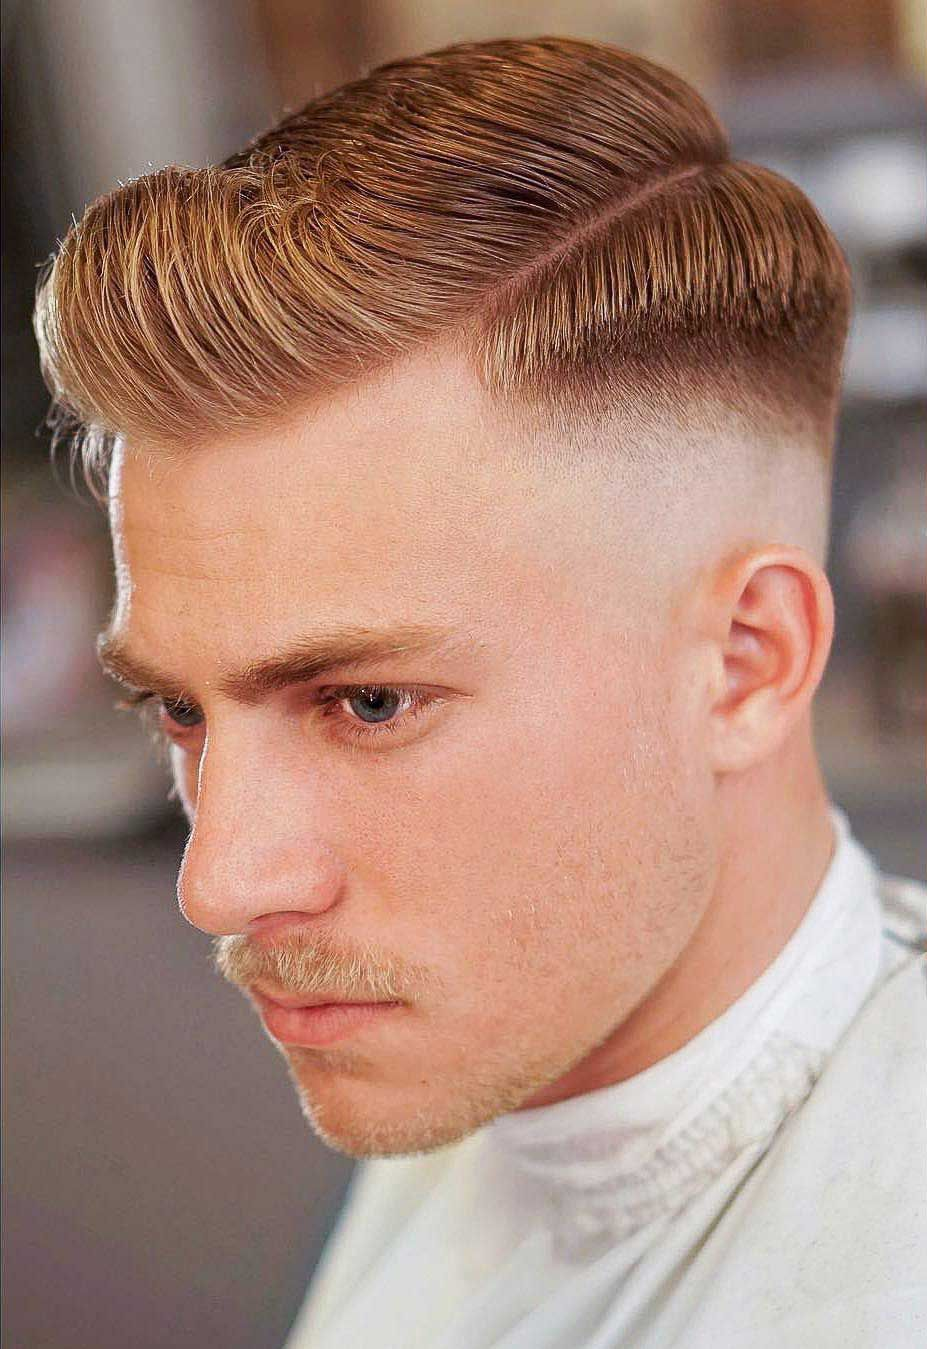 Awesome 70 Trendy Fade Haircut For Men Looks Nice Check More At Http Machohairstyles Com Fade Hair Mens Haircuts Fade Mens Haircuts Short Short Hair Styles